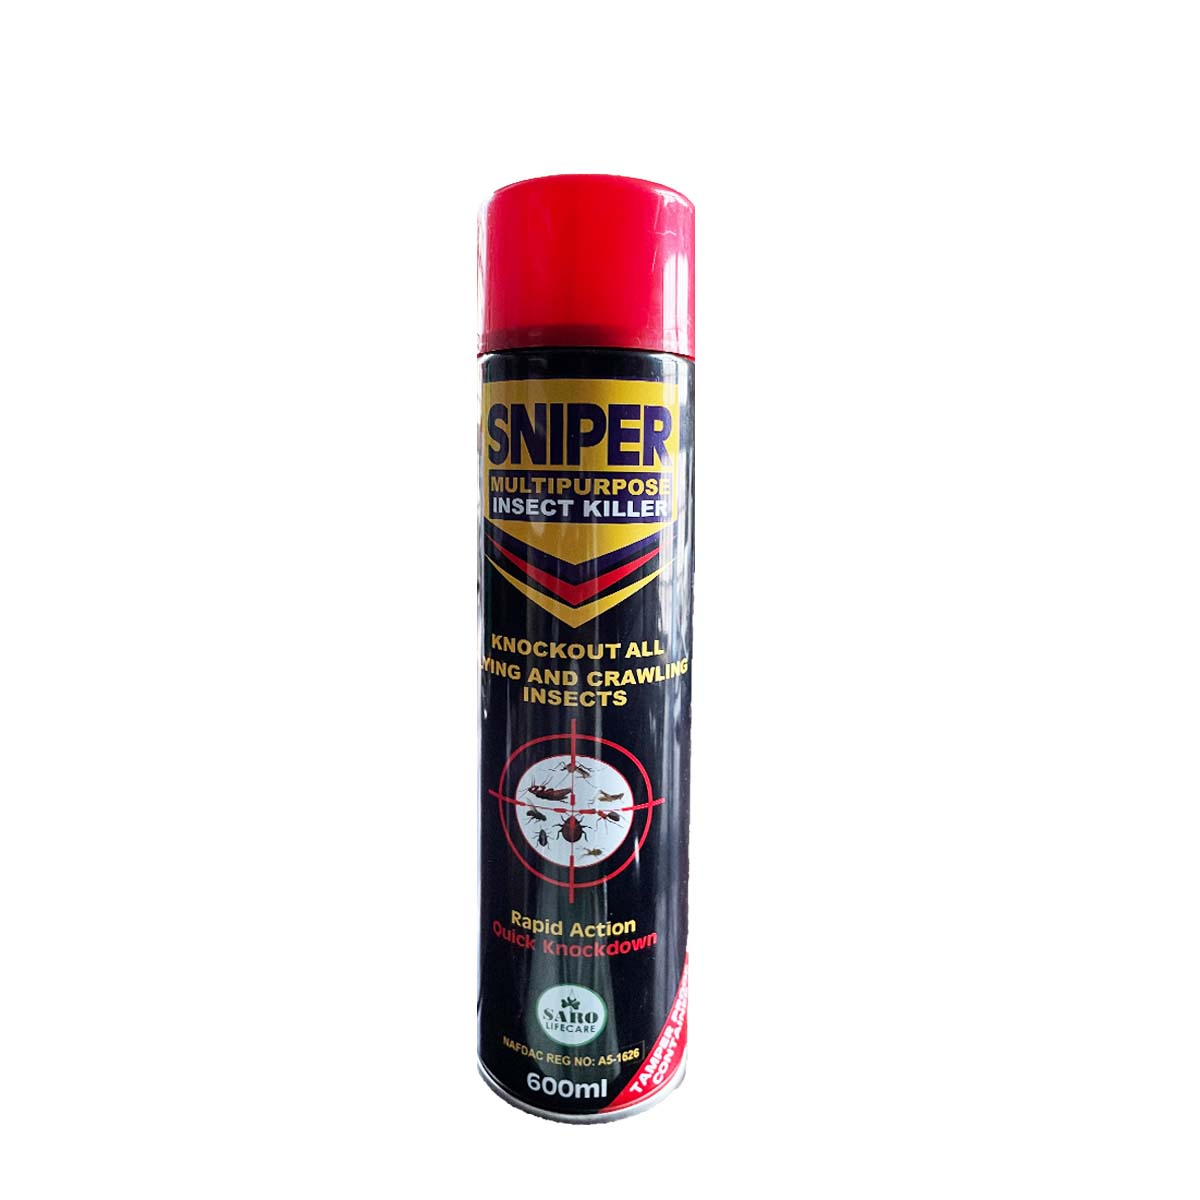 Sniper Multi Purpose Insect Killer Flying And Crawling Insecticide 600ml